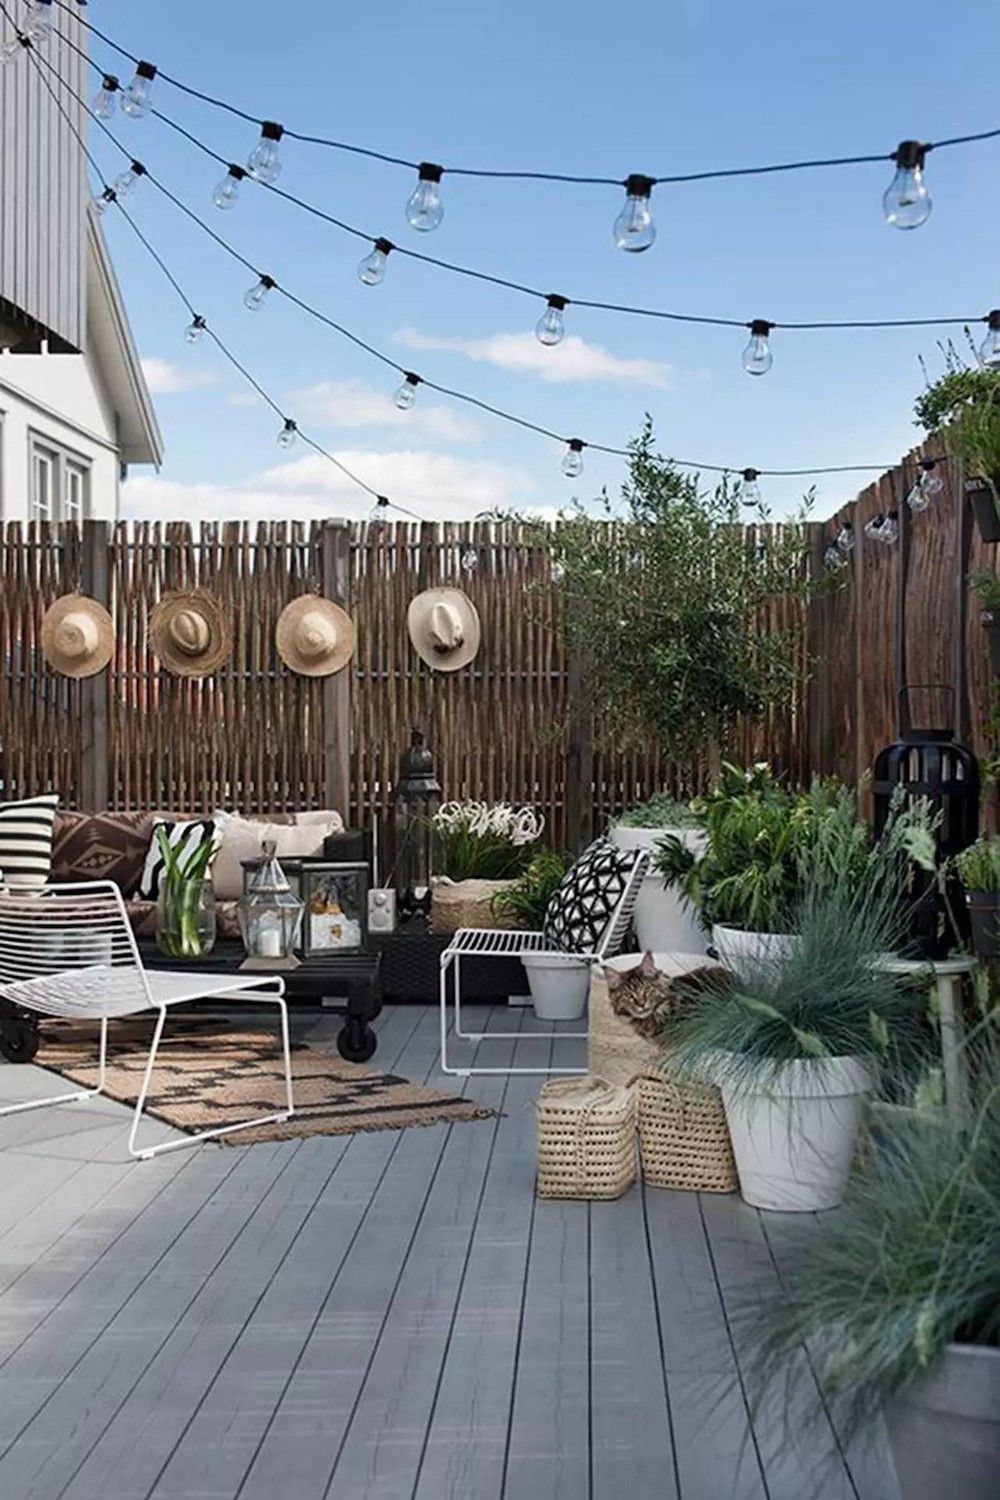 Hanging Hats Privacy Fence Outdoor Patio String Lights Backyard Ideas